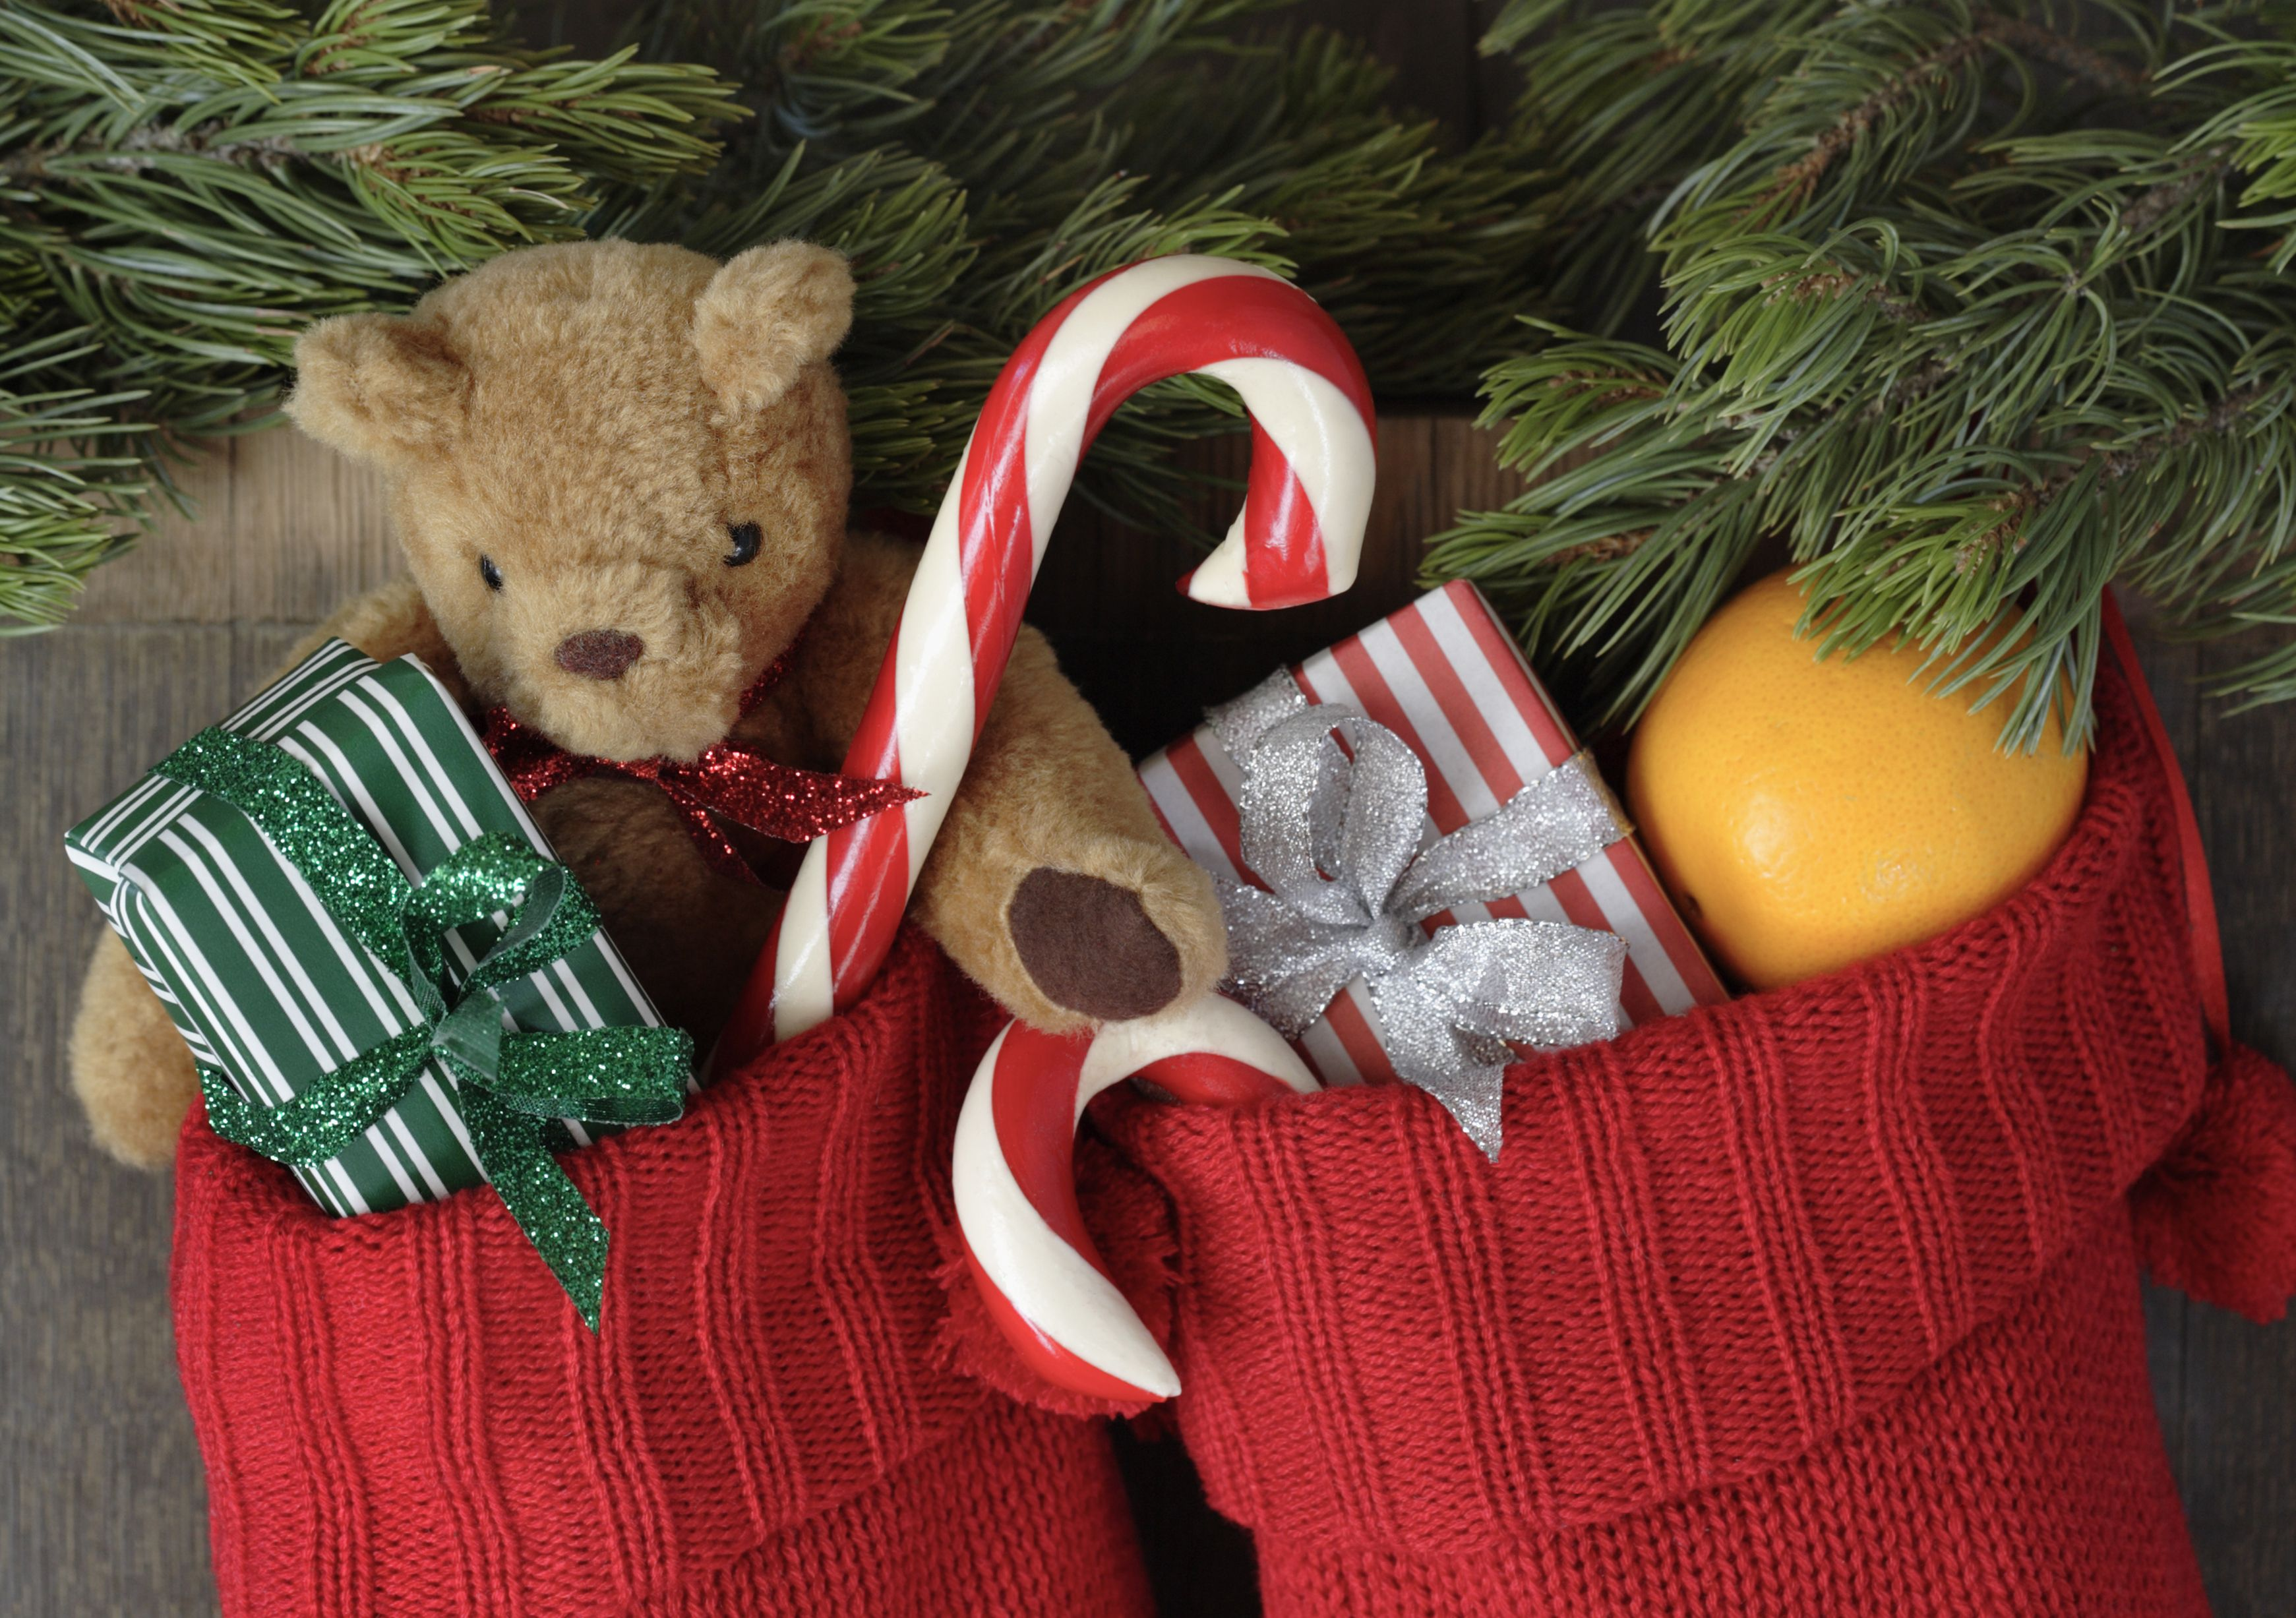 The Reason We Leave Oranges in Christmas Stockings - History of ...